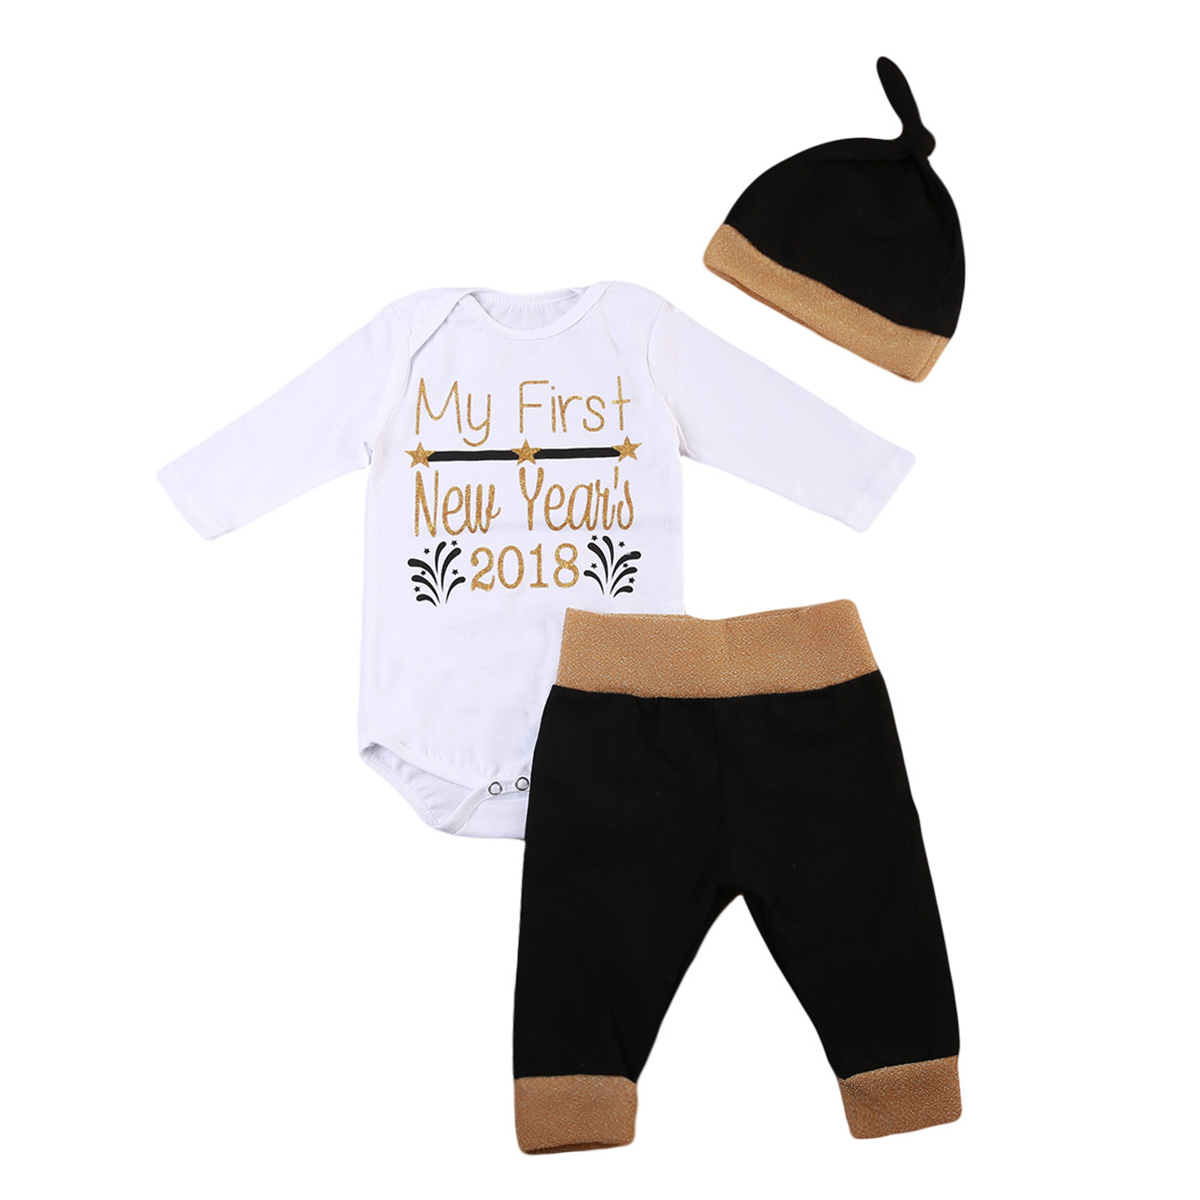 Kids Baby Boy Girls Clothes Set Hooded Tops + Long Pants + Hat 3Pcs Christmas New Year 2018 Outfits toddler kids baby boy girls summer clothes sets christmas batman outfits tops long pants 2pcs casual clothes set 2016 newest